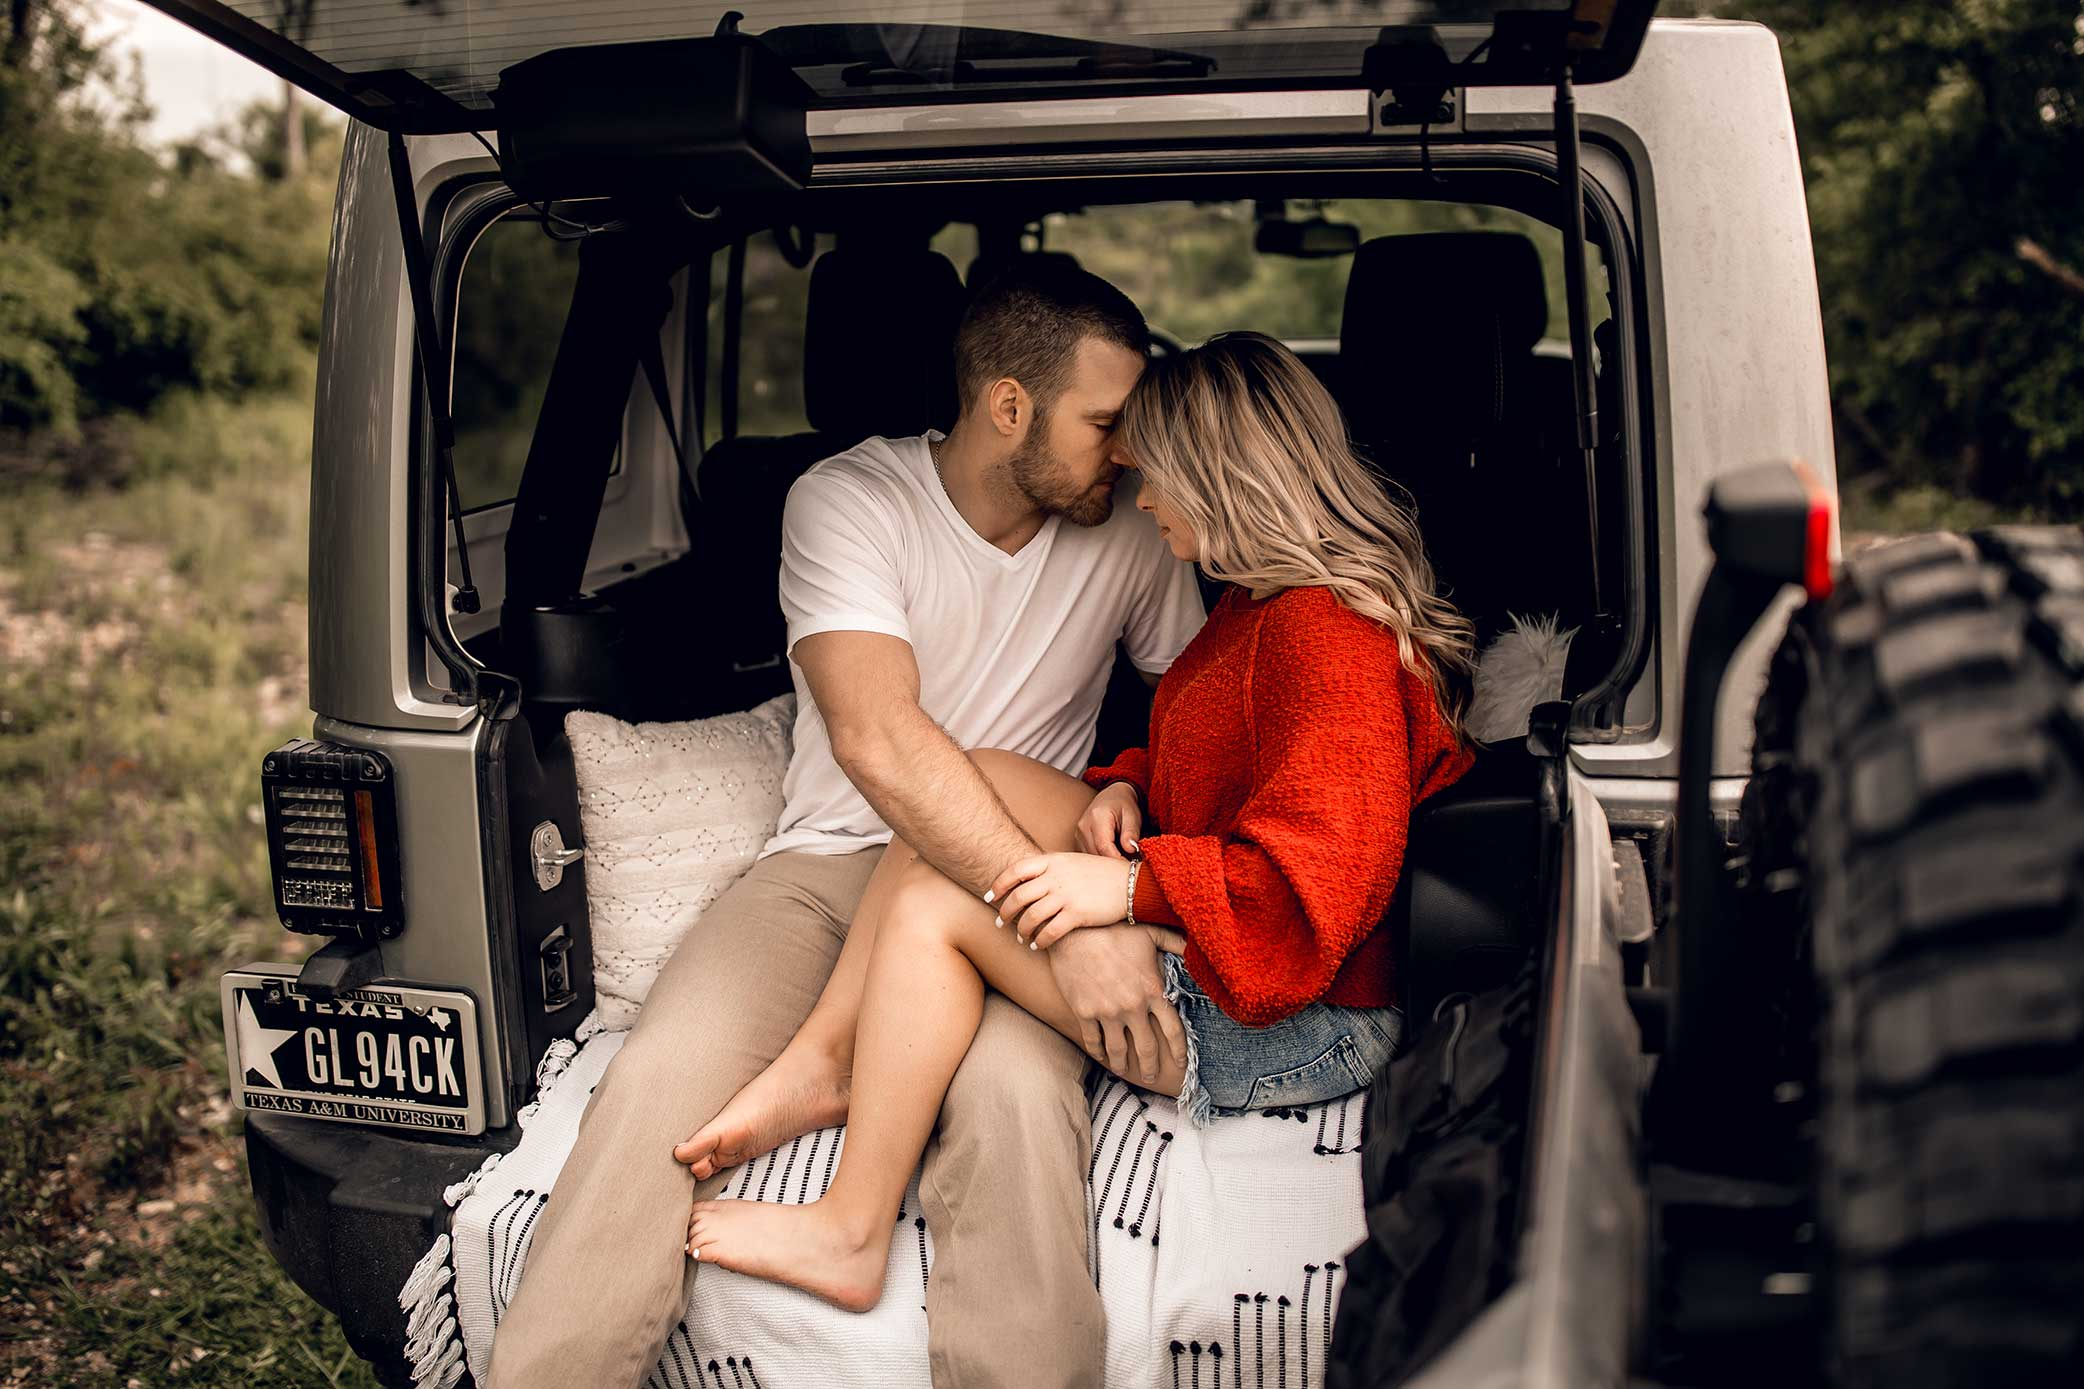 shelby-schiller-photography-lifestyle-couples-remi-colt-outdoor-jeep-adventure-27.jpg